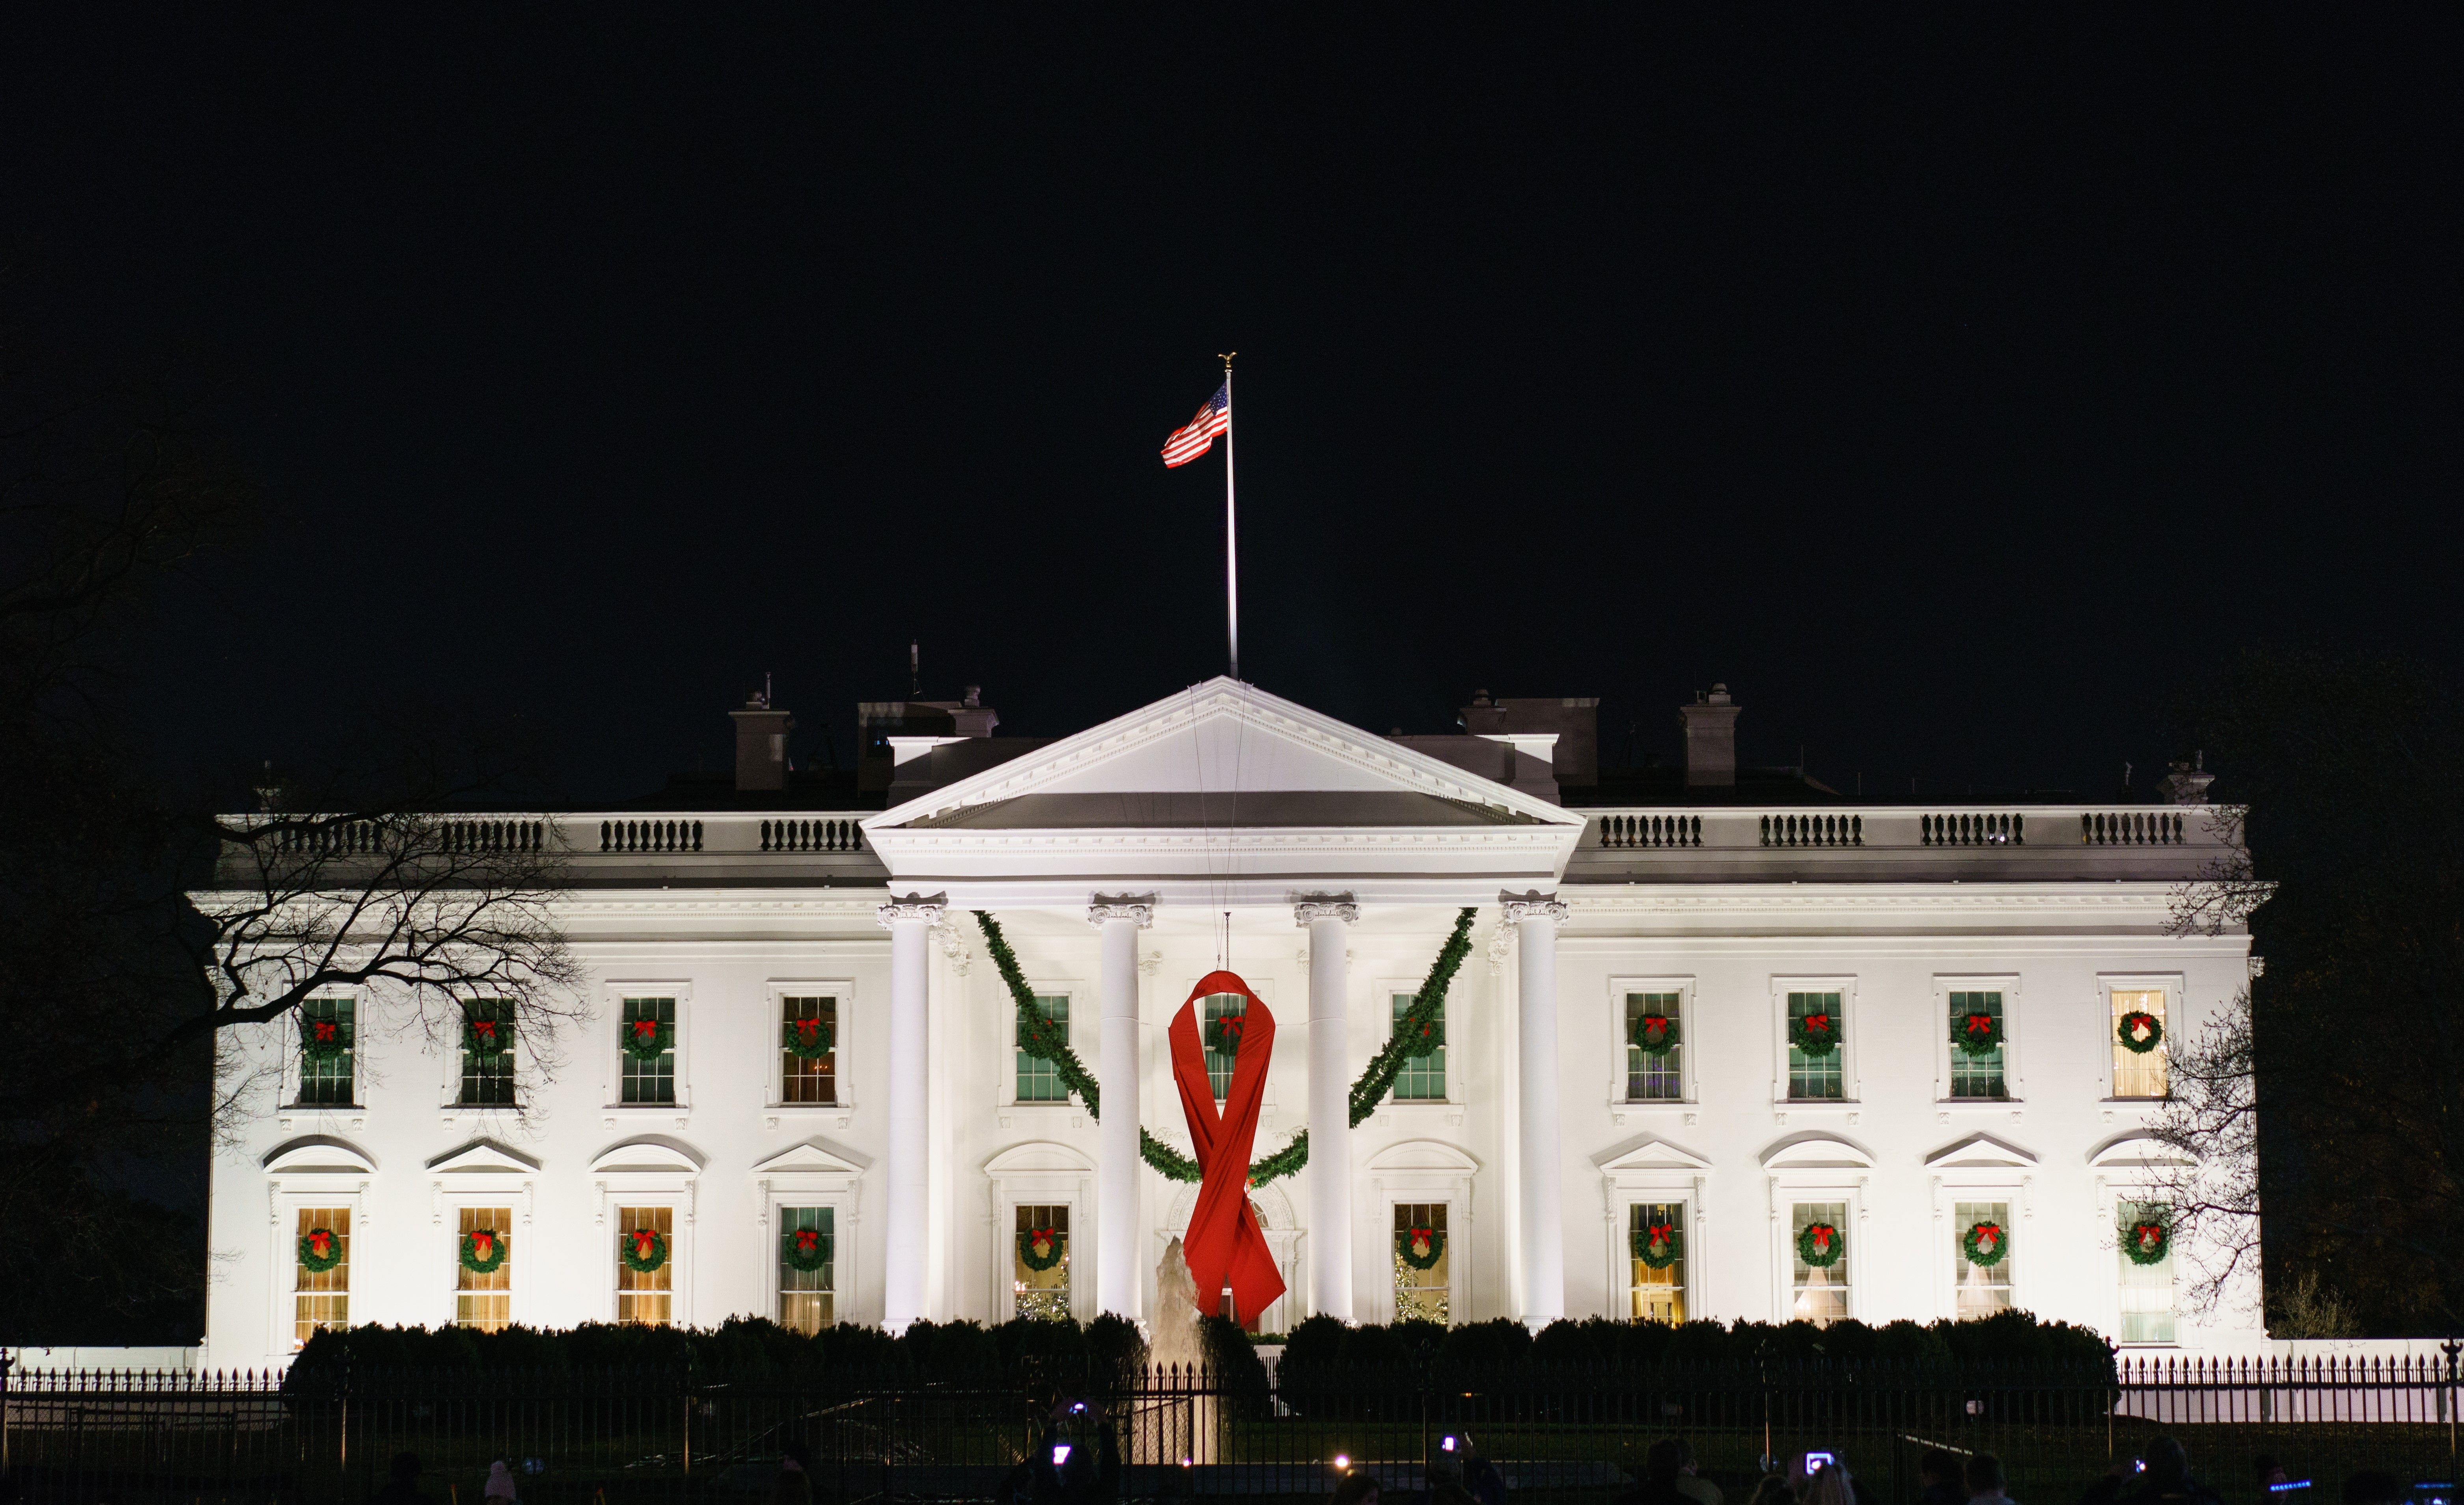 United States  to extend HIV/AIDS aid programme: Pence